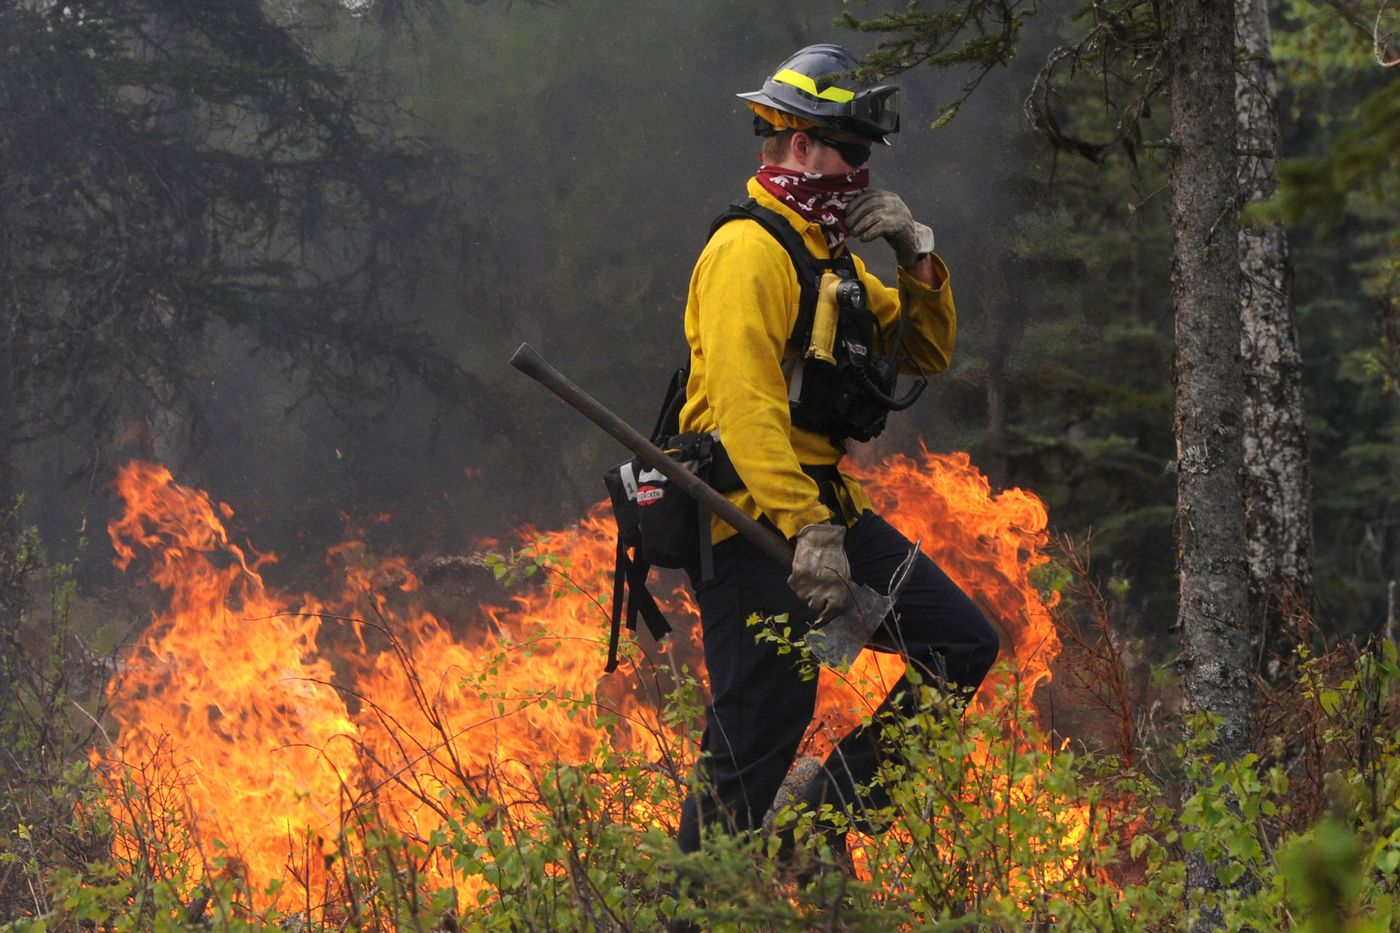 Firefighters from the Kenai Peninsula's Central Emergency Services monitor hot spots to prevent the Funny River wildfire from crossing Funny River Road on Thursday, May 22, 2014. The fire burned nearly 200,000 acres.